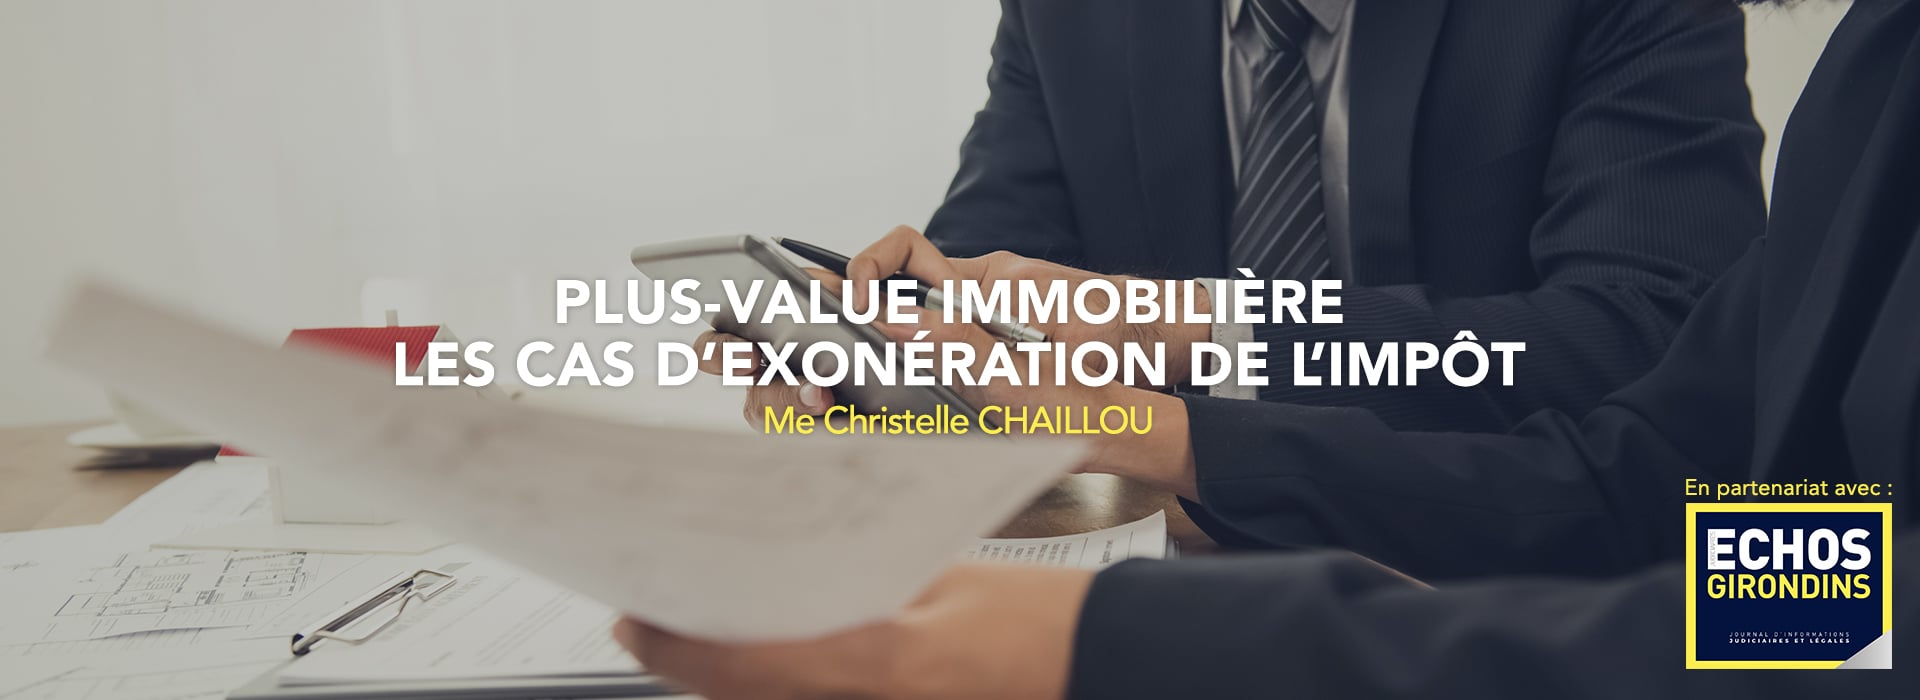 CDNG EchoArticle Christelle CHAILLOU